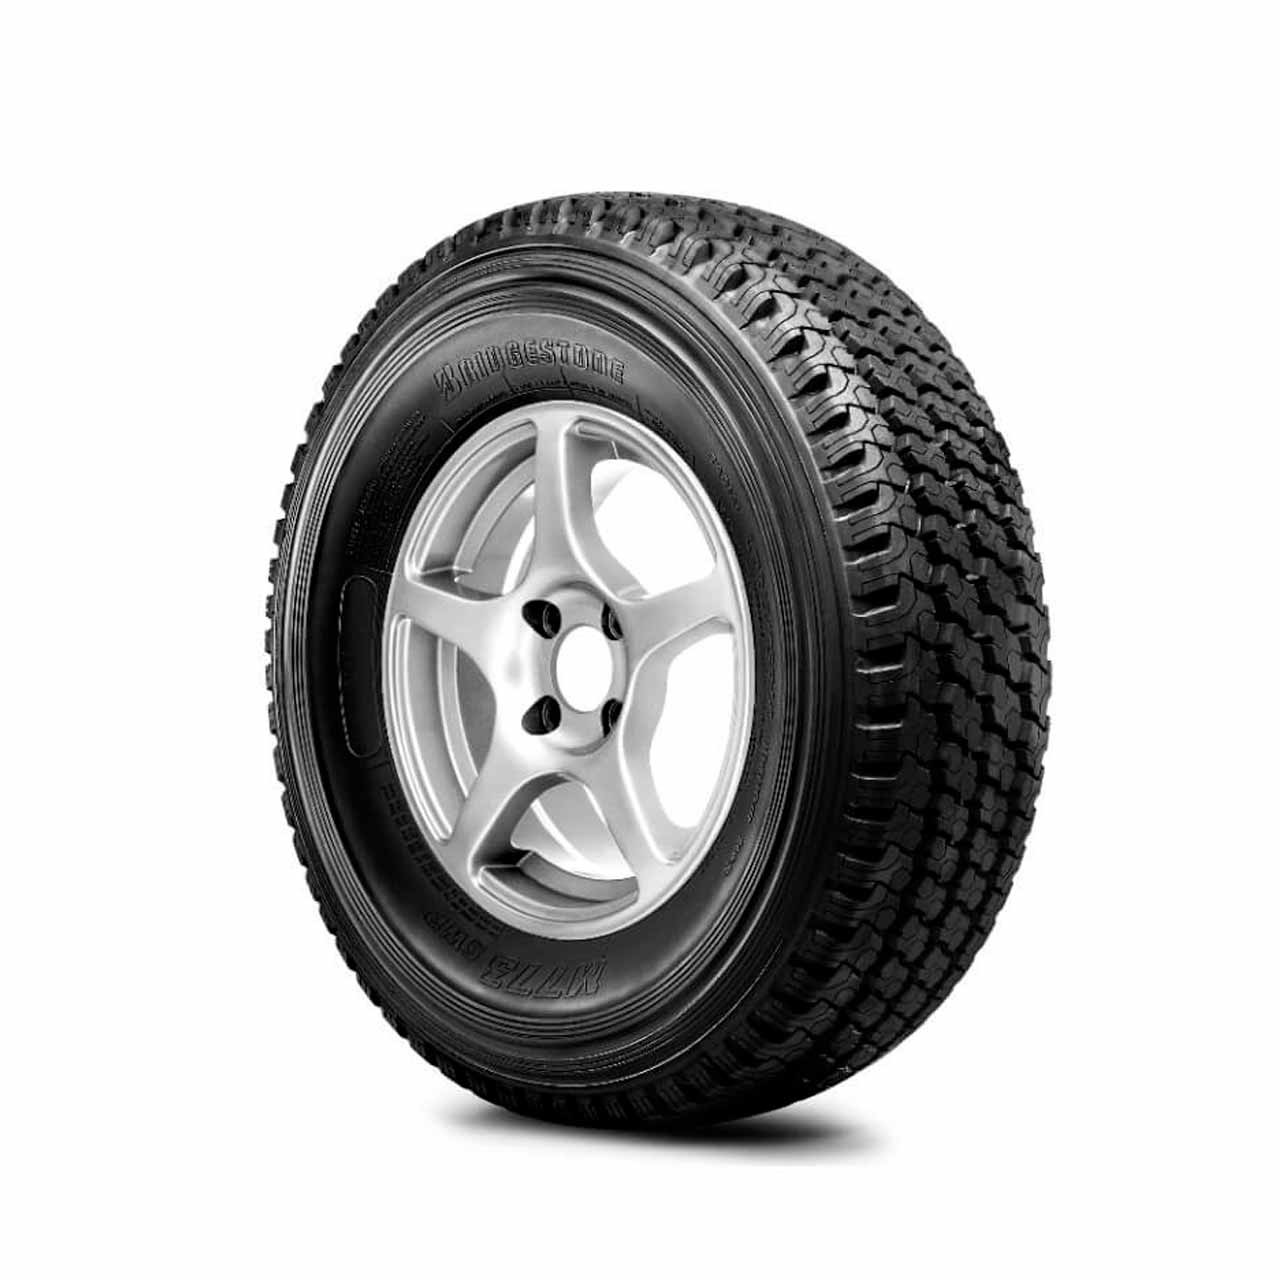 Bridgestone Other M773